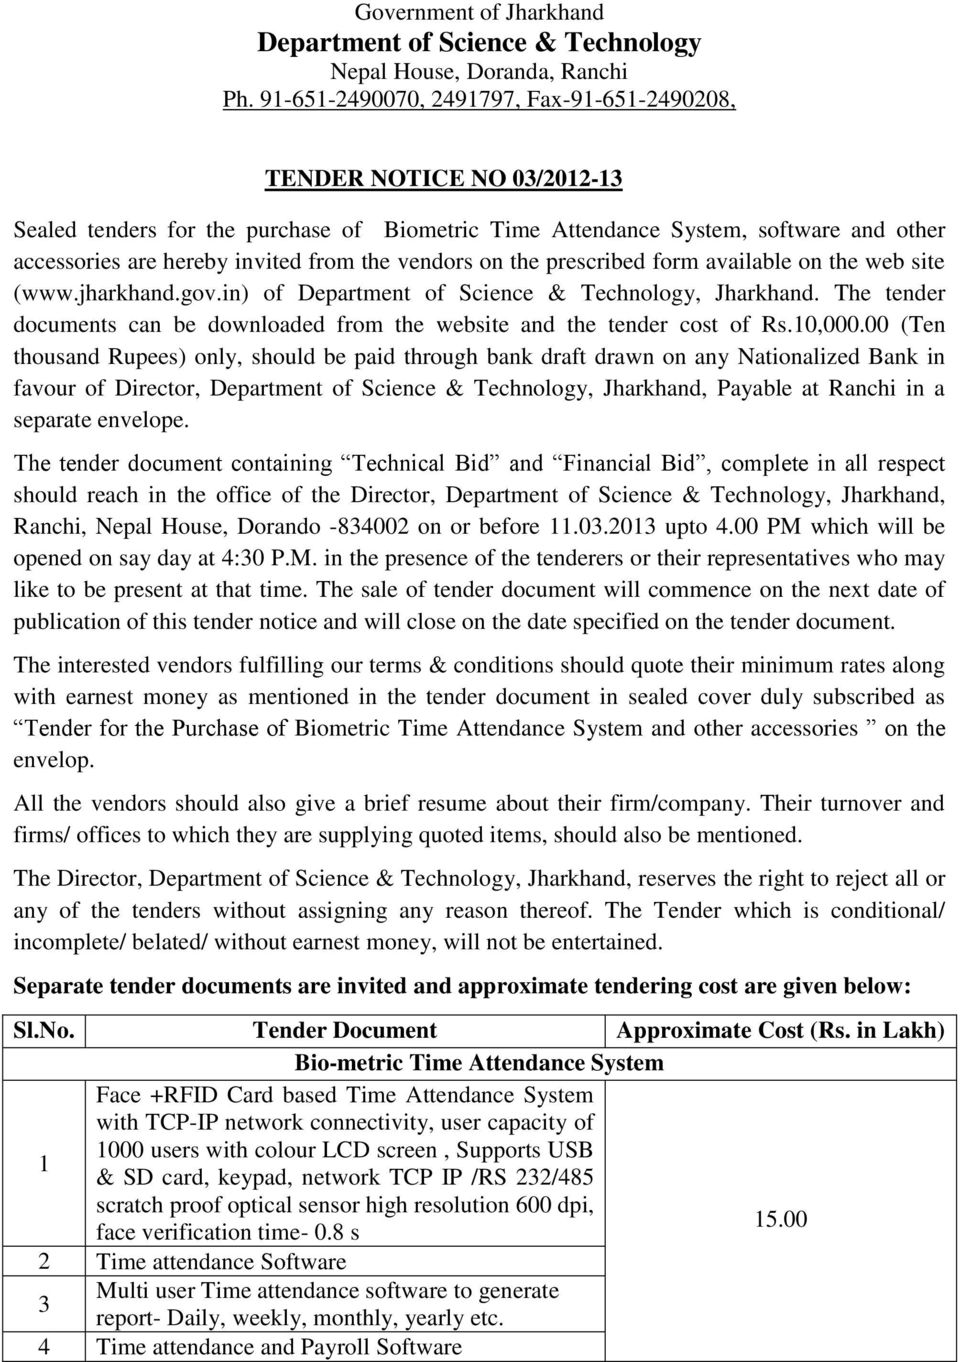 the vendors on the prescribed form available on the web site (www.jharkhand.gov.in) of Department of Science & Technology, Jharkhand.